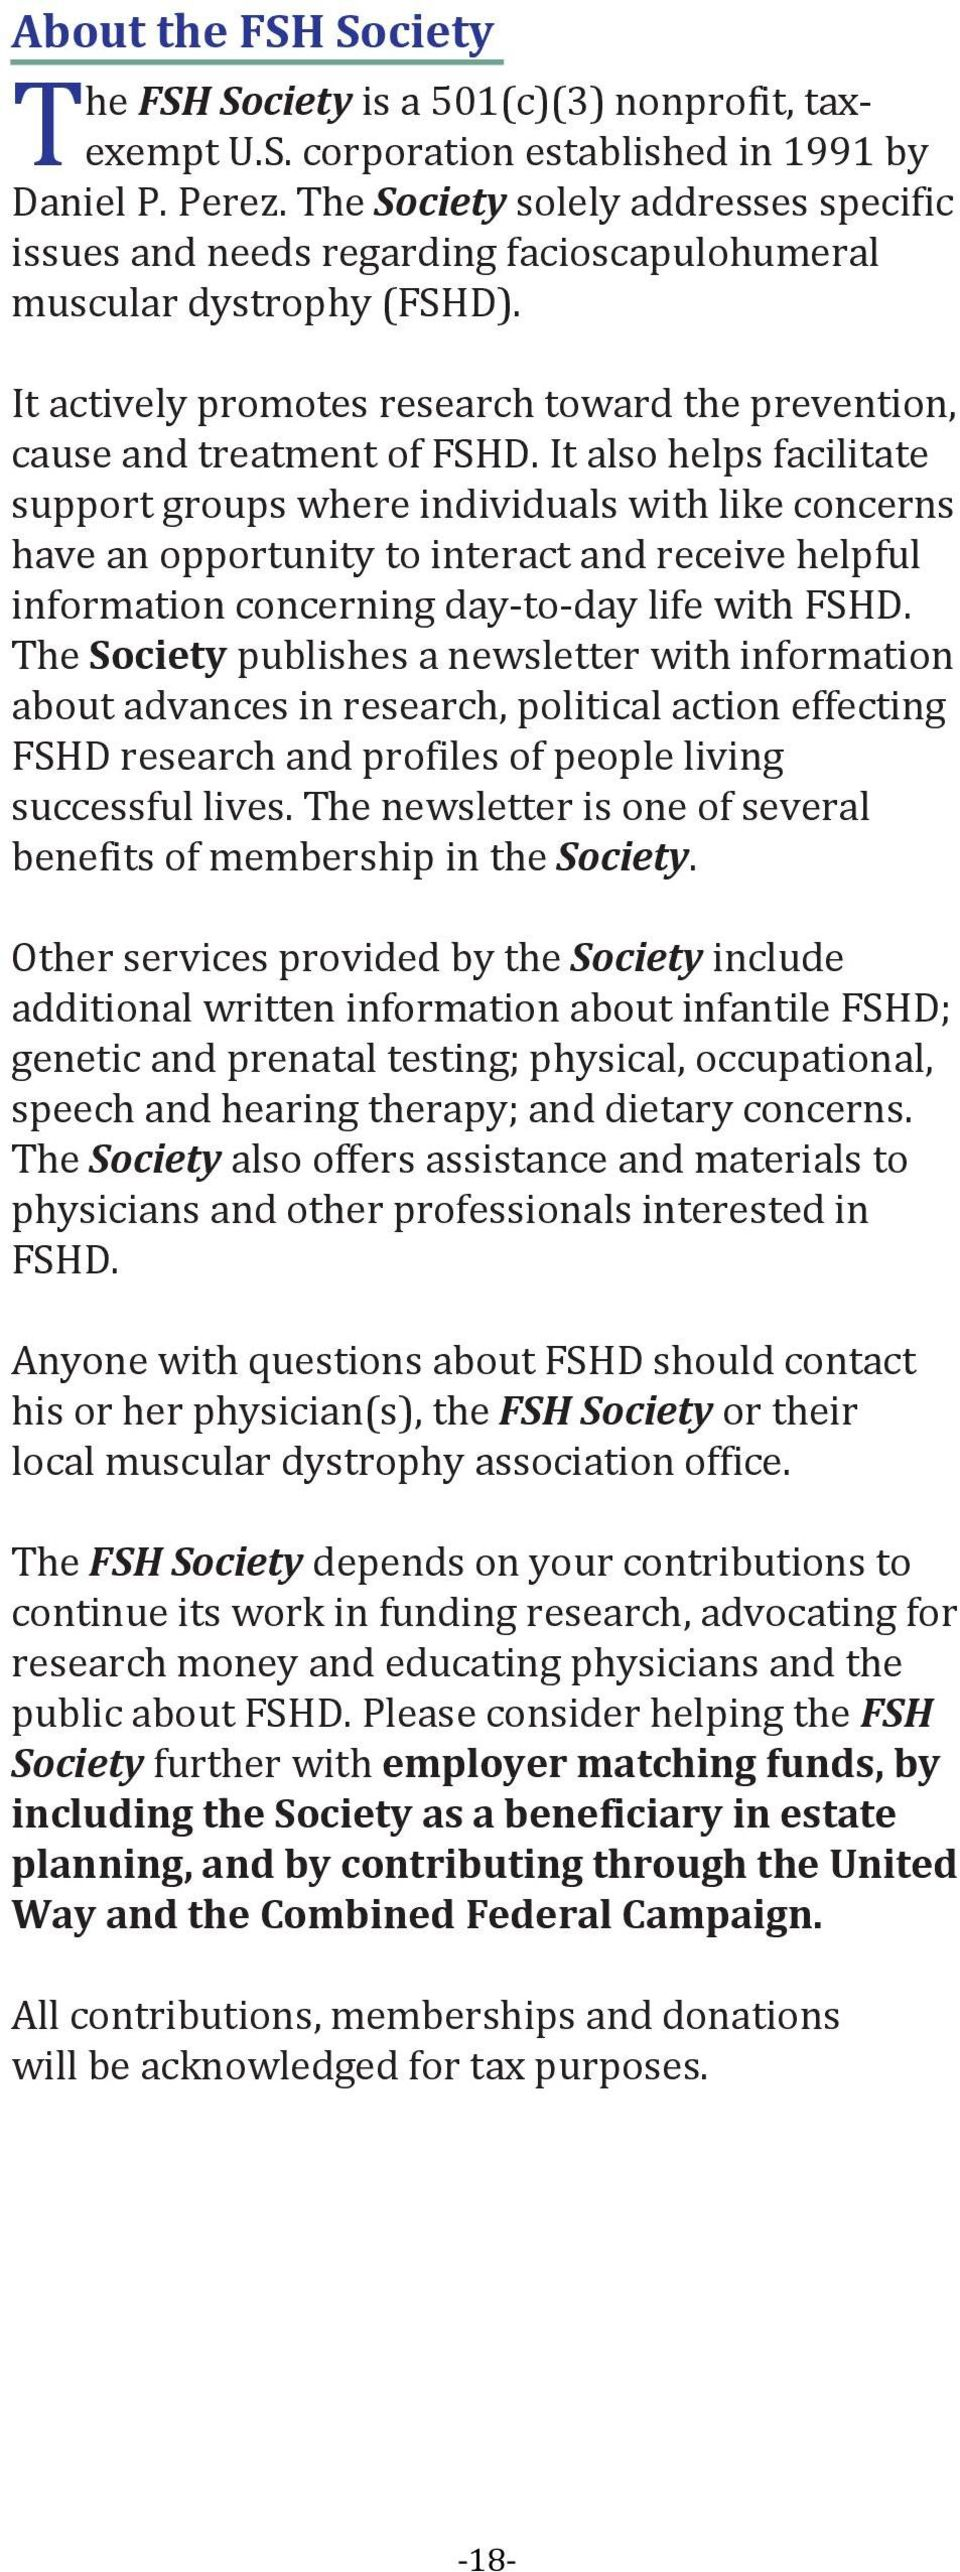 Physical Therapy & FSHD - PDF